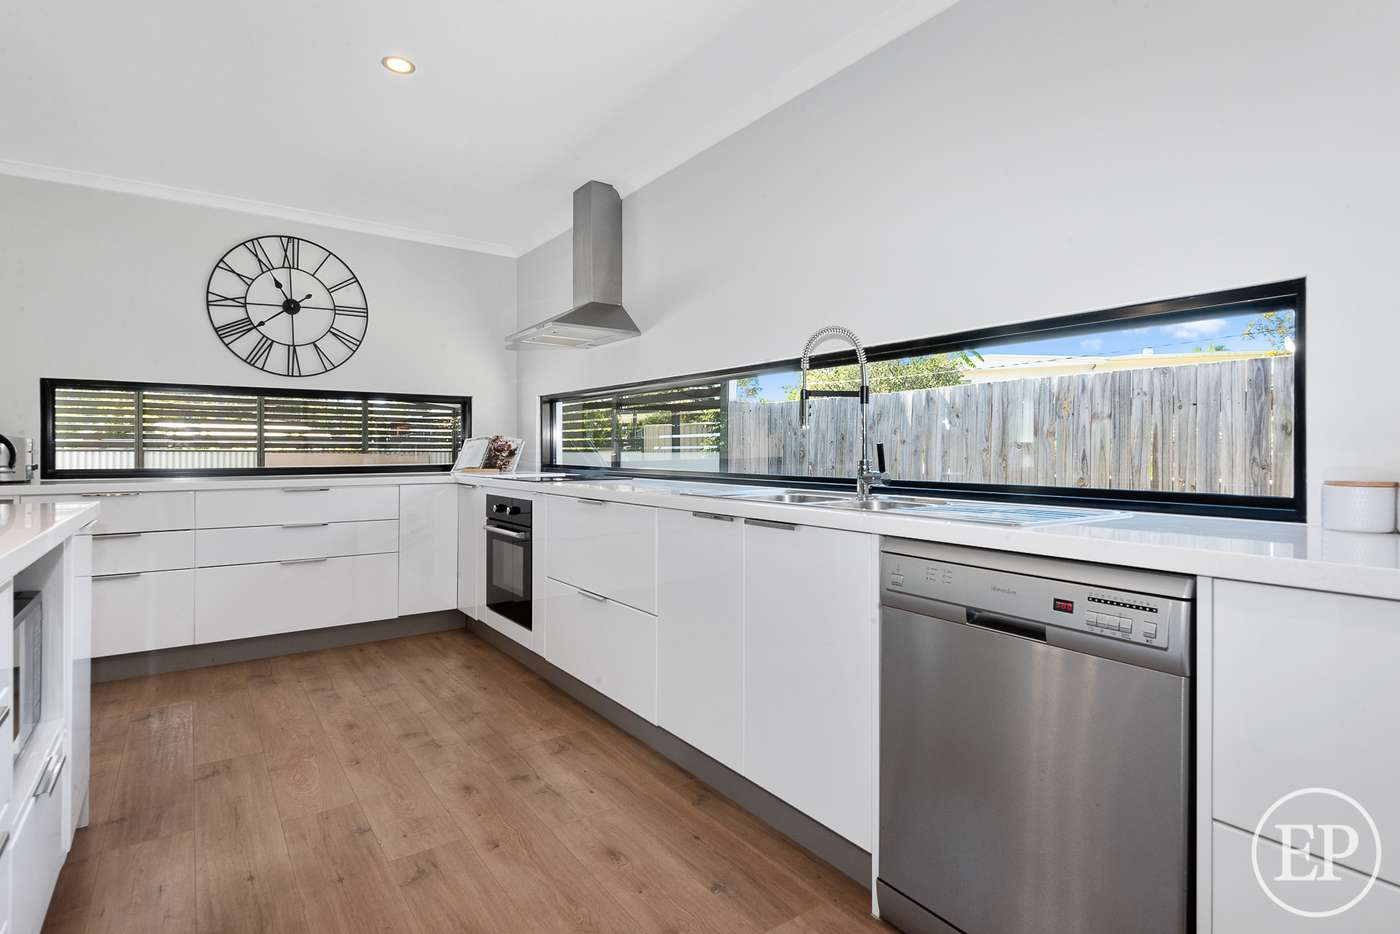 Sixth view of Homely house listing, 18 Amanda Street, Burpengary QLD 4505